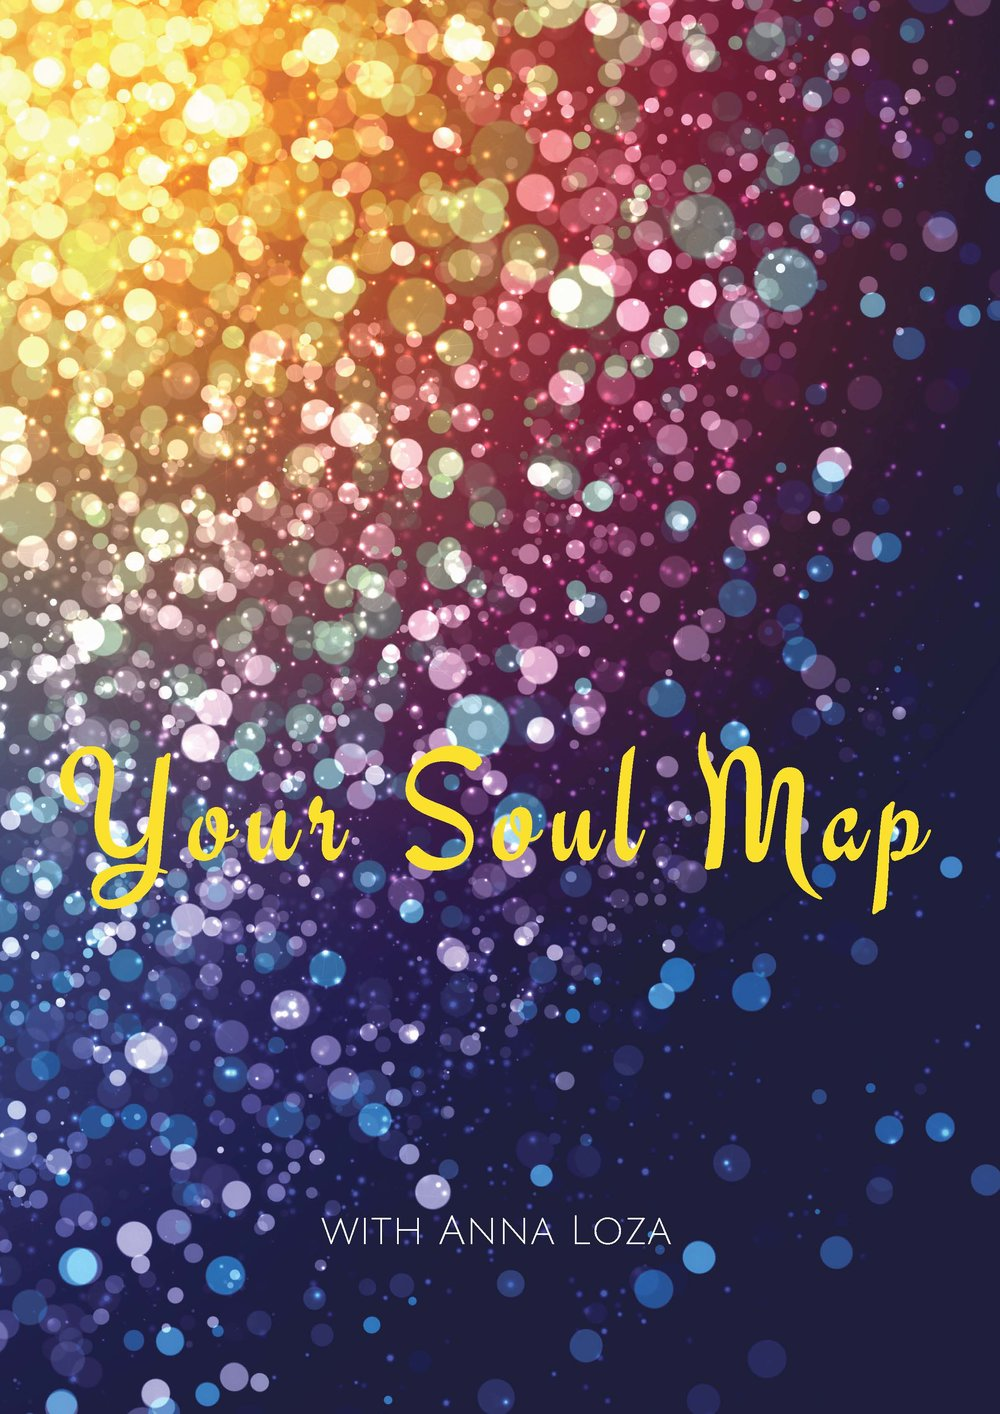 Your Soul Map cover image_Page_1.jpg